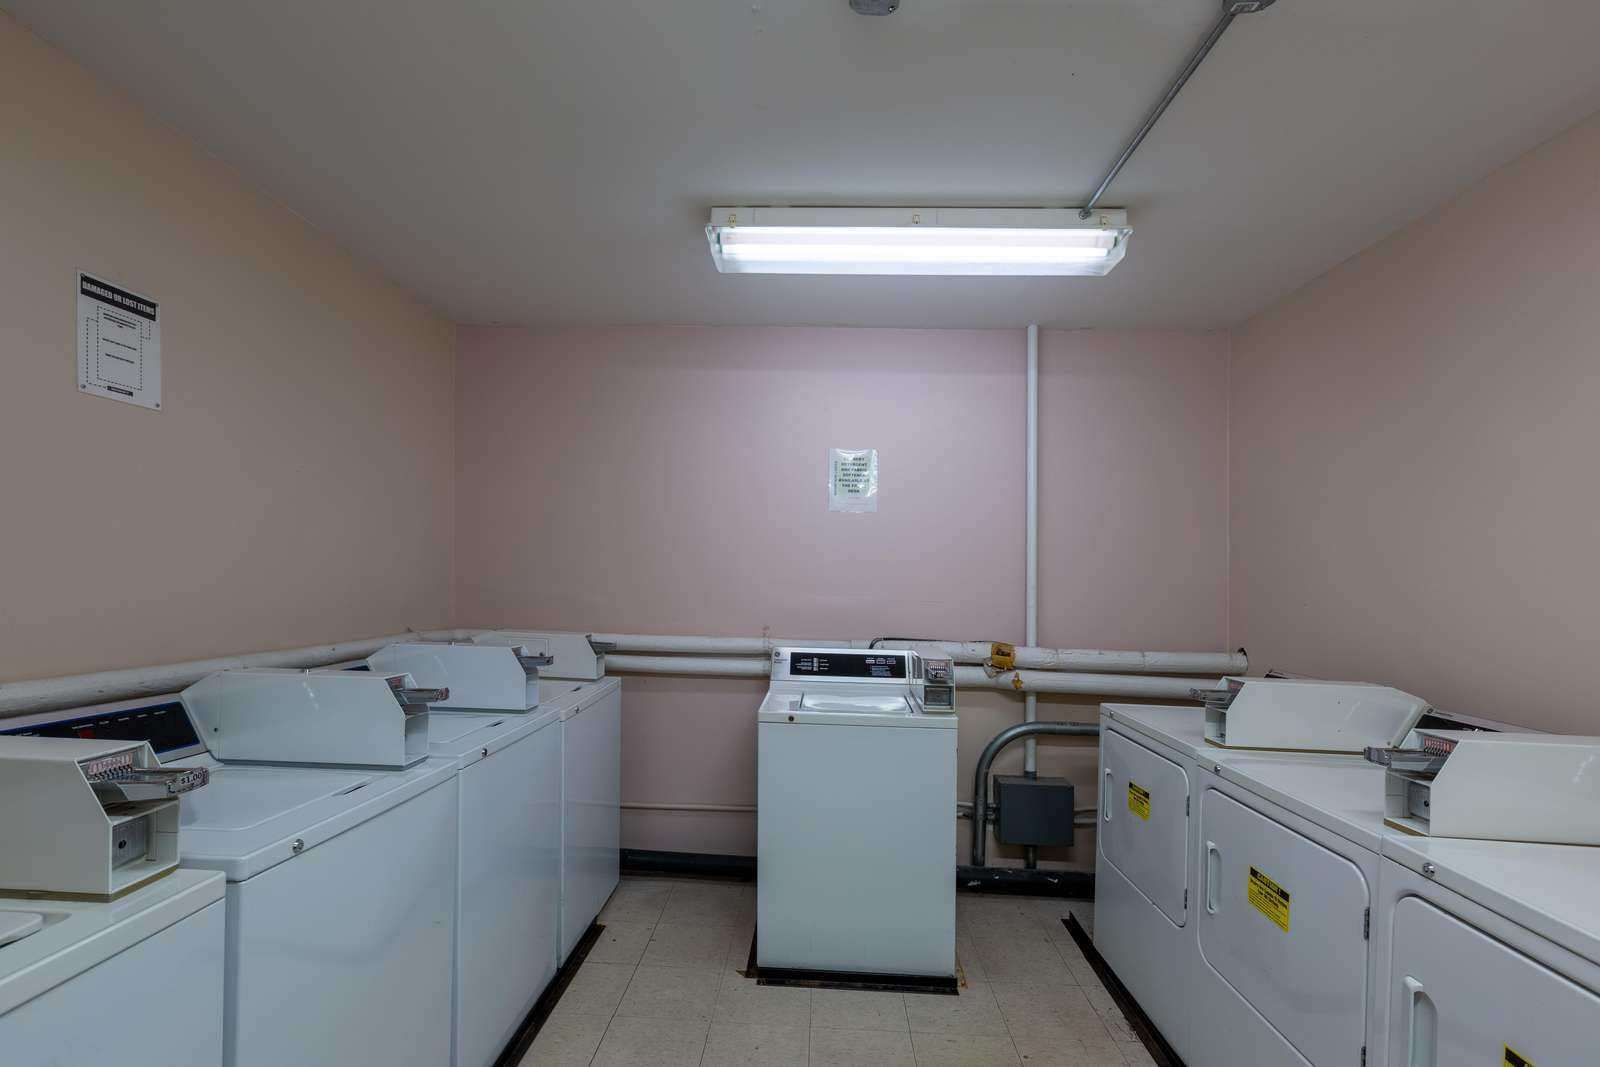 Communal washer and dryer area